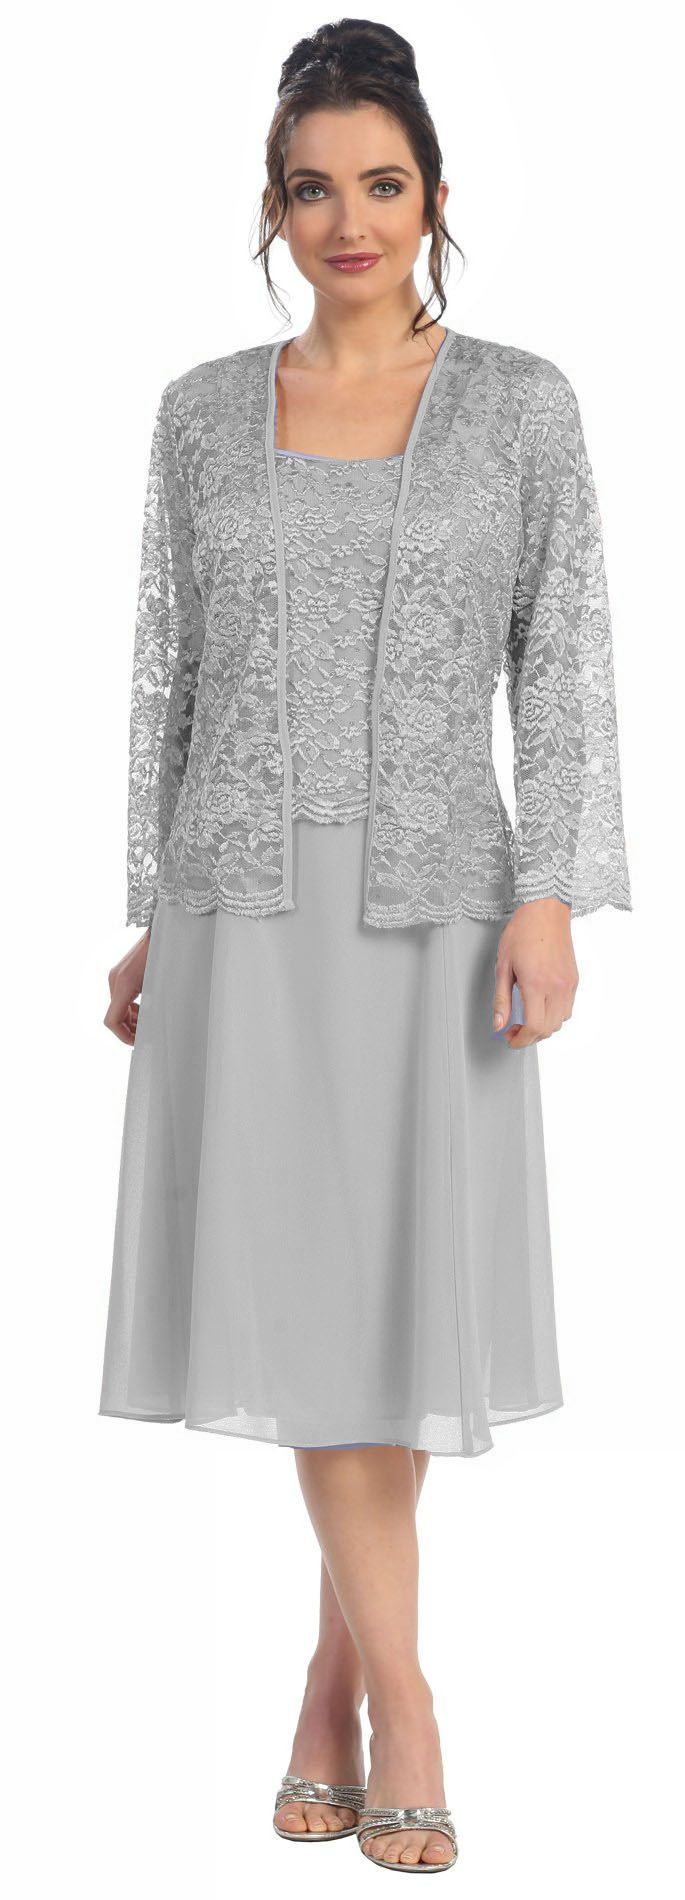 Short silver mother of groom dress chiffon knee length for Lace jackets for wedding dresses